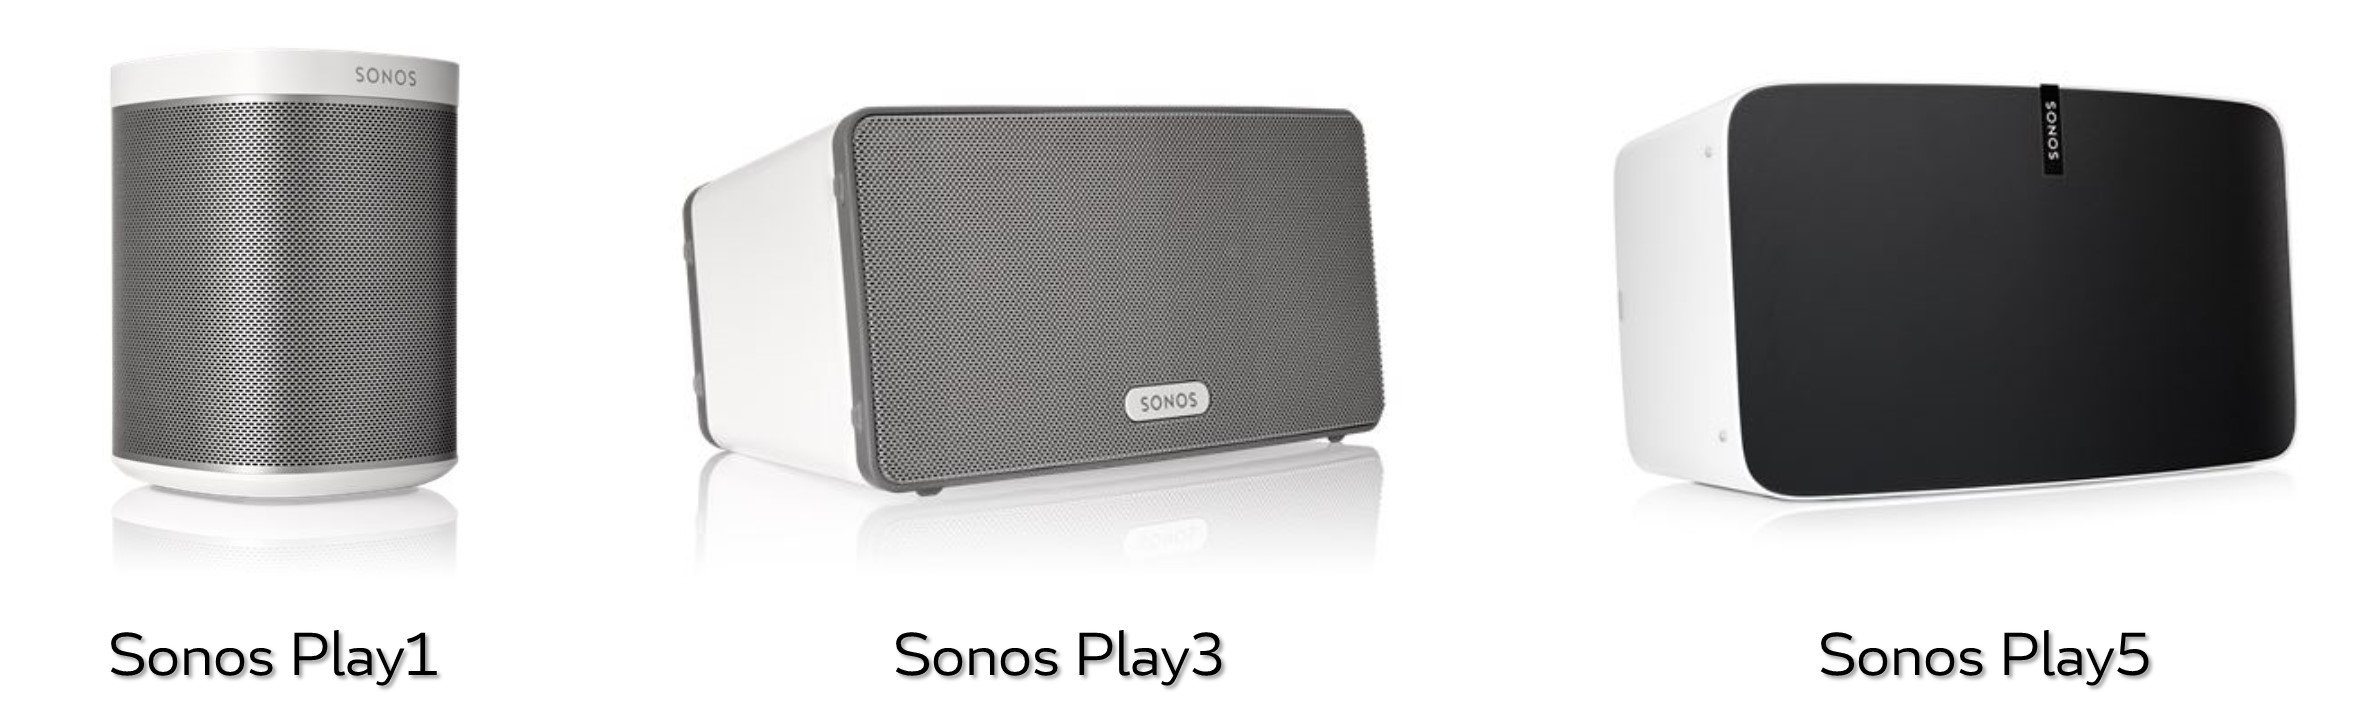 how to play different music in different rooms sonos